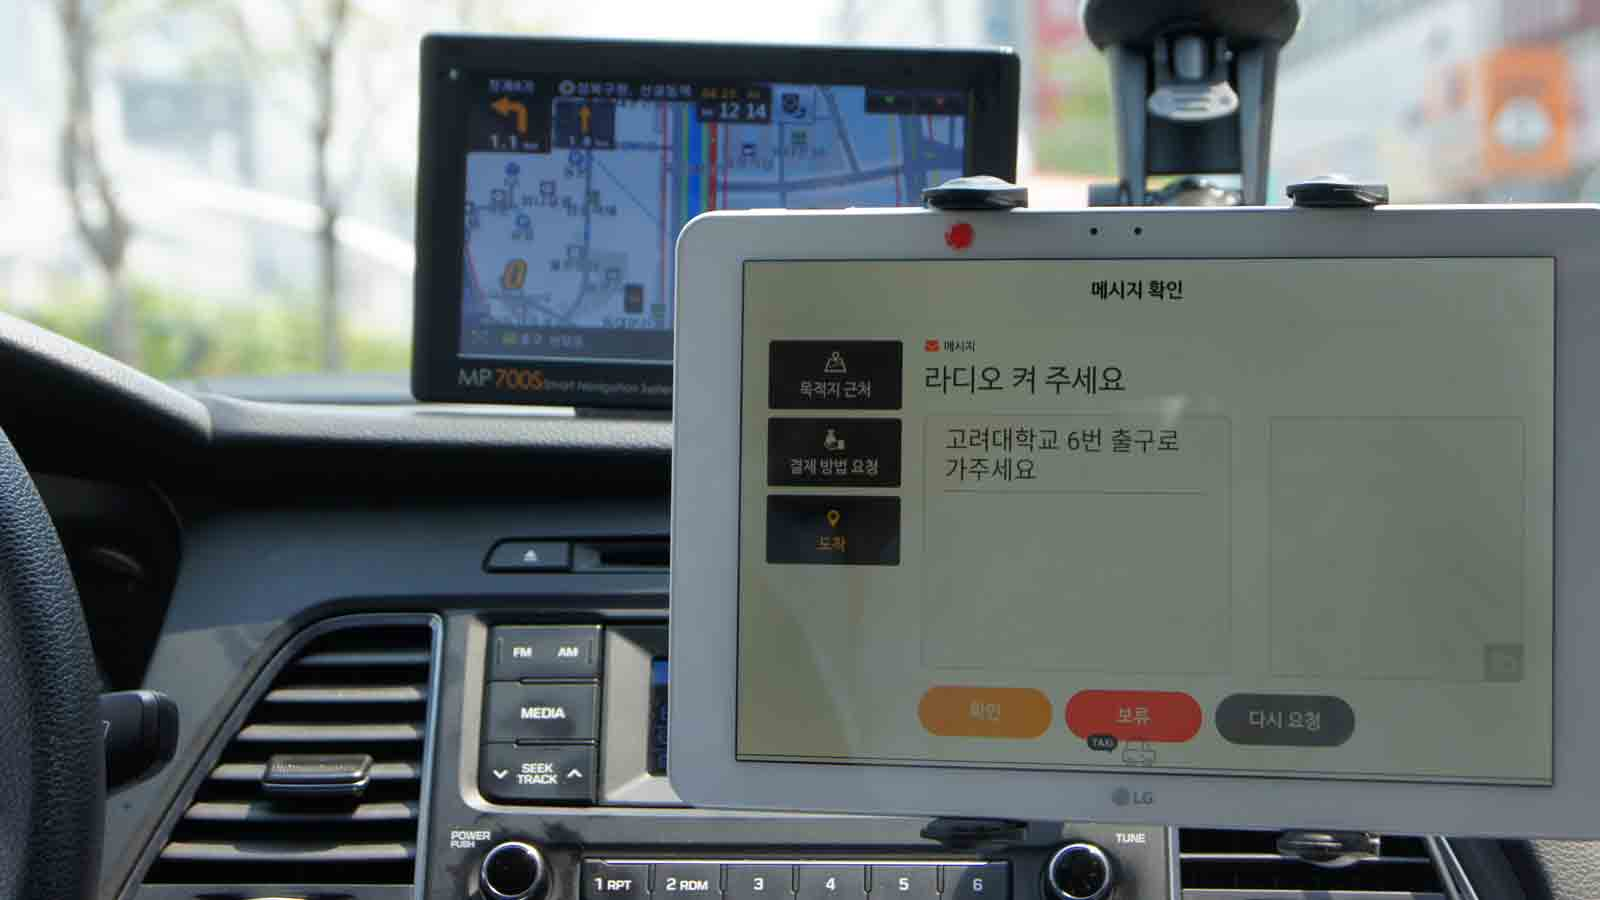 Taxi meter in South Korea